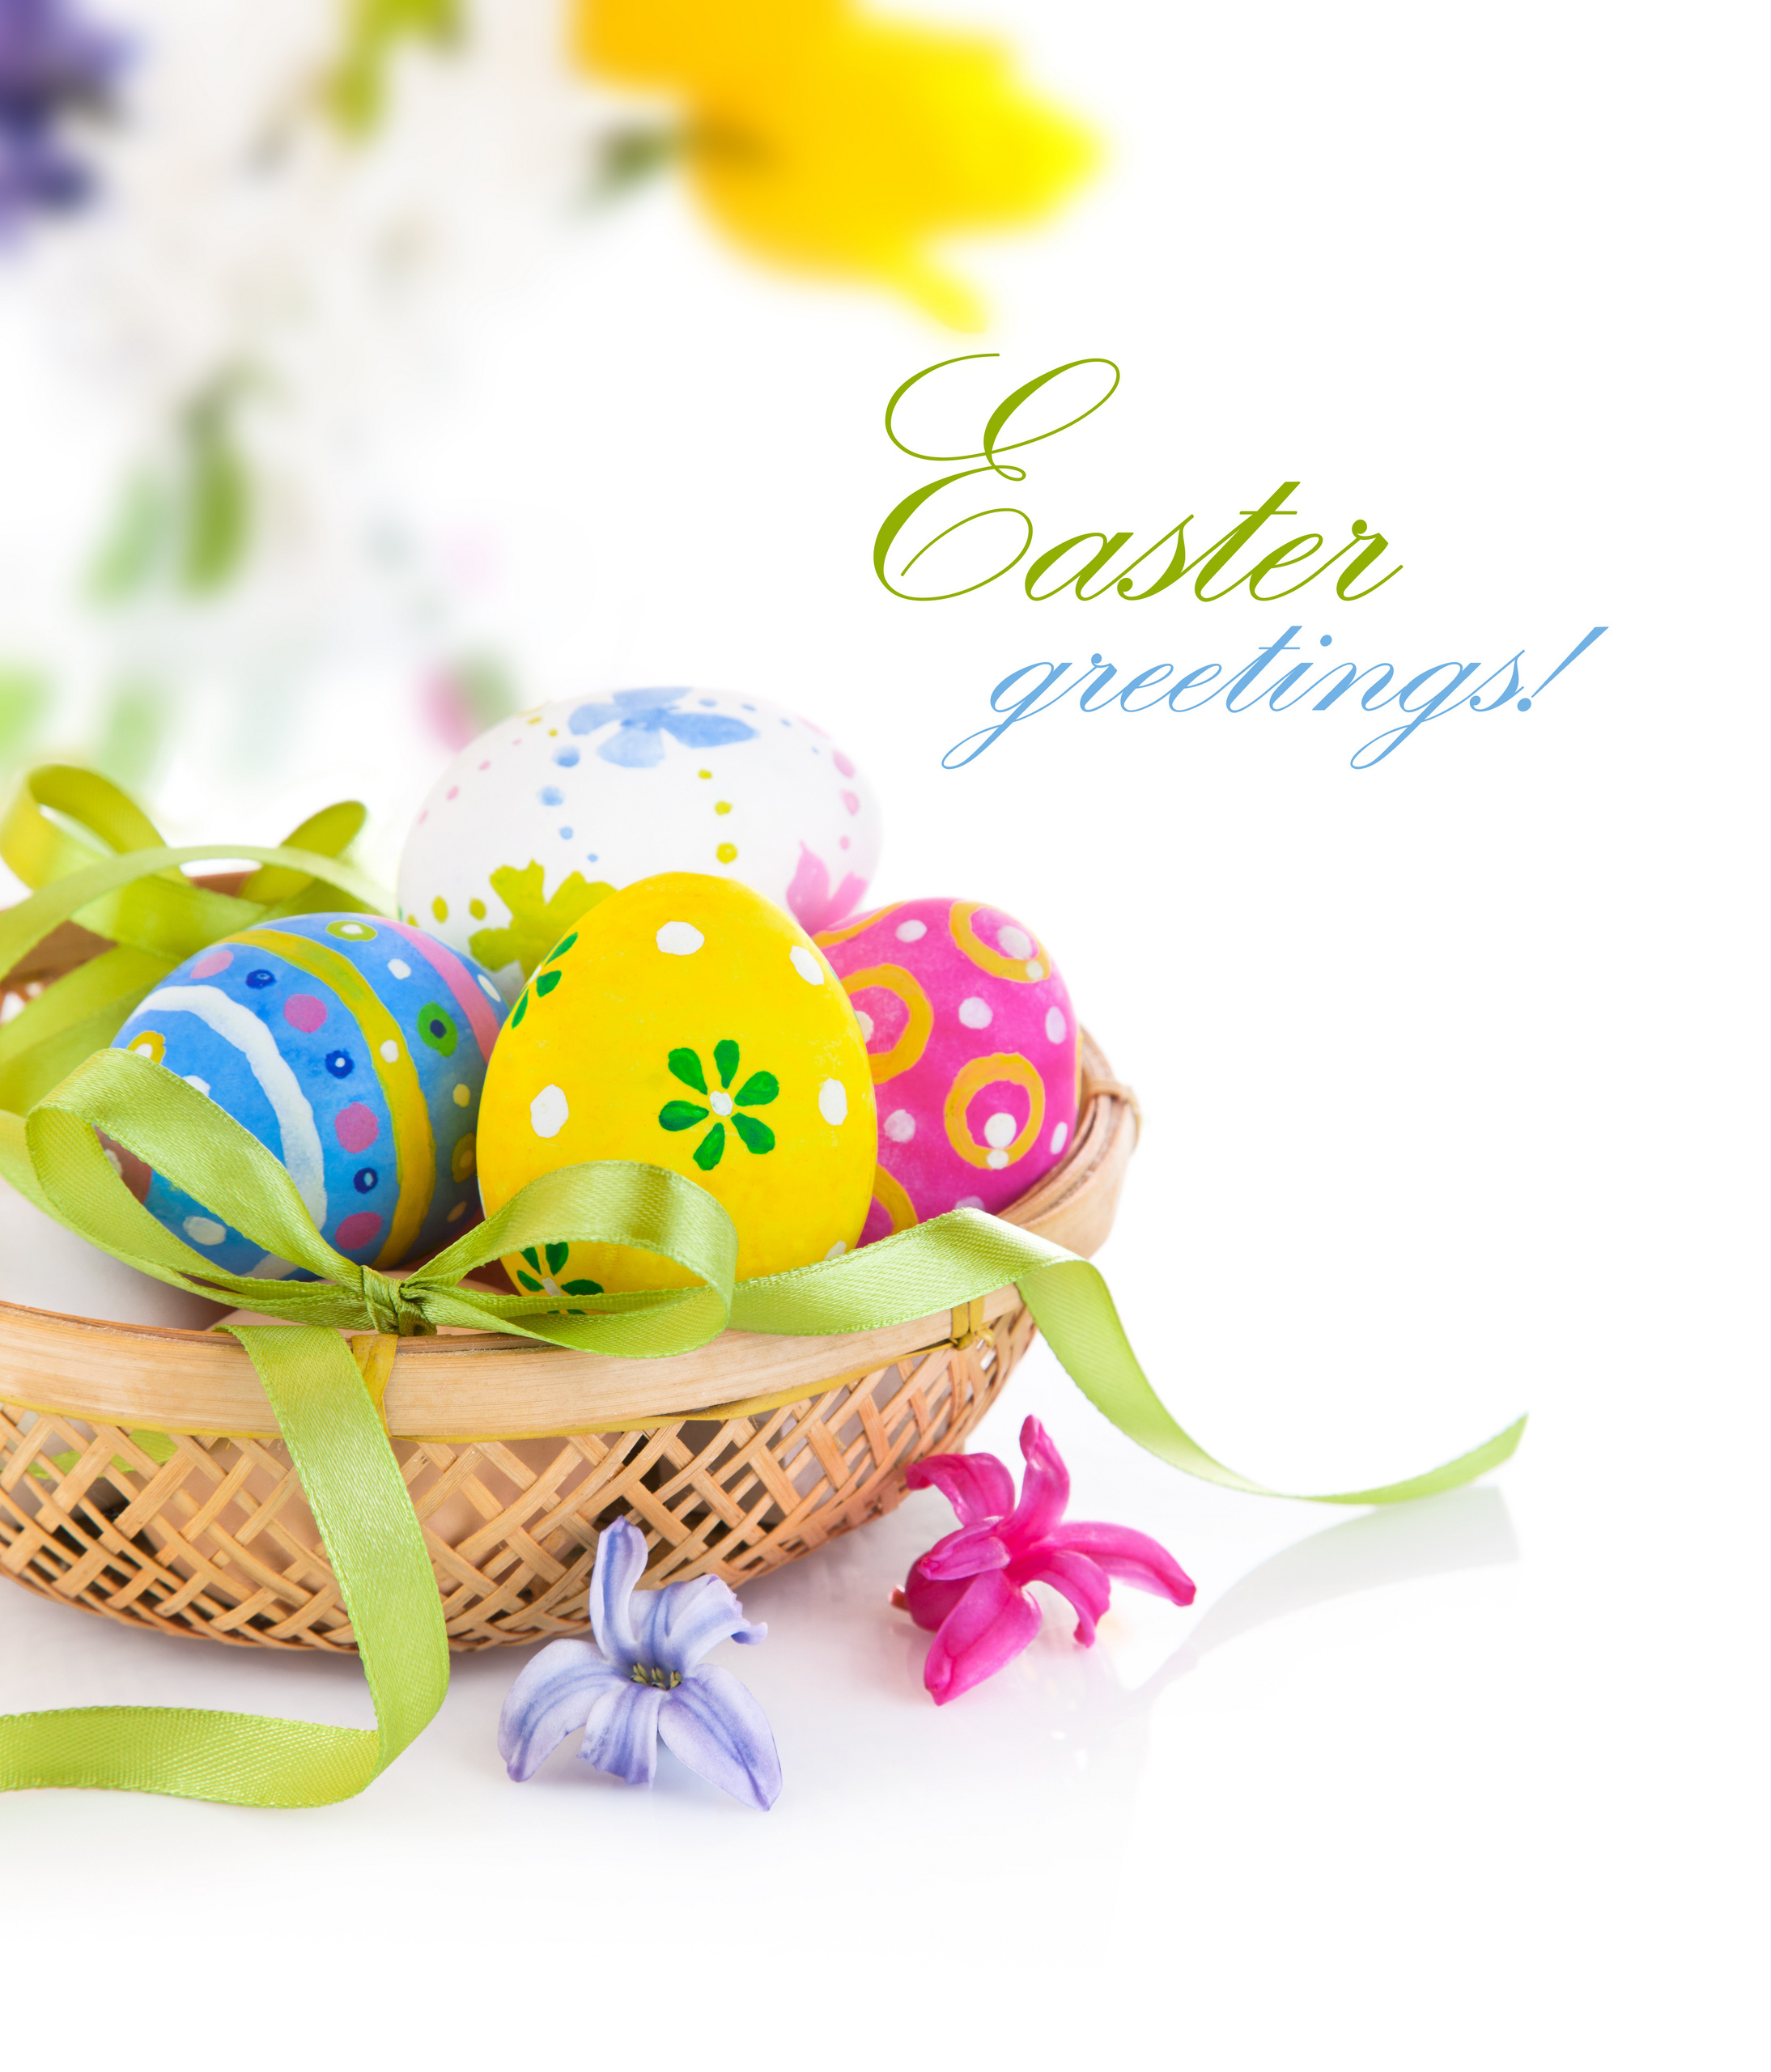 Easter images Easter greeting card HD wallpaper and background 2188x2560